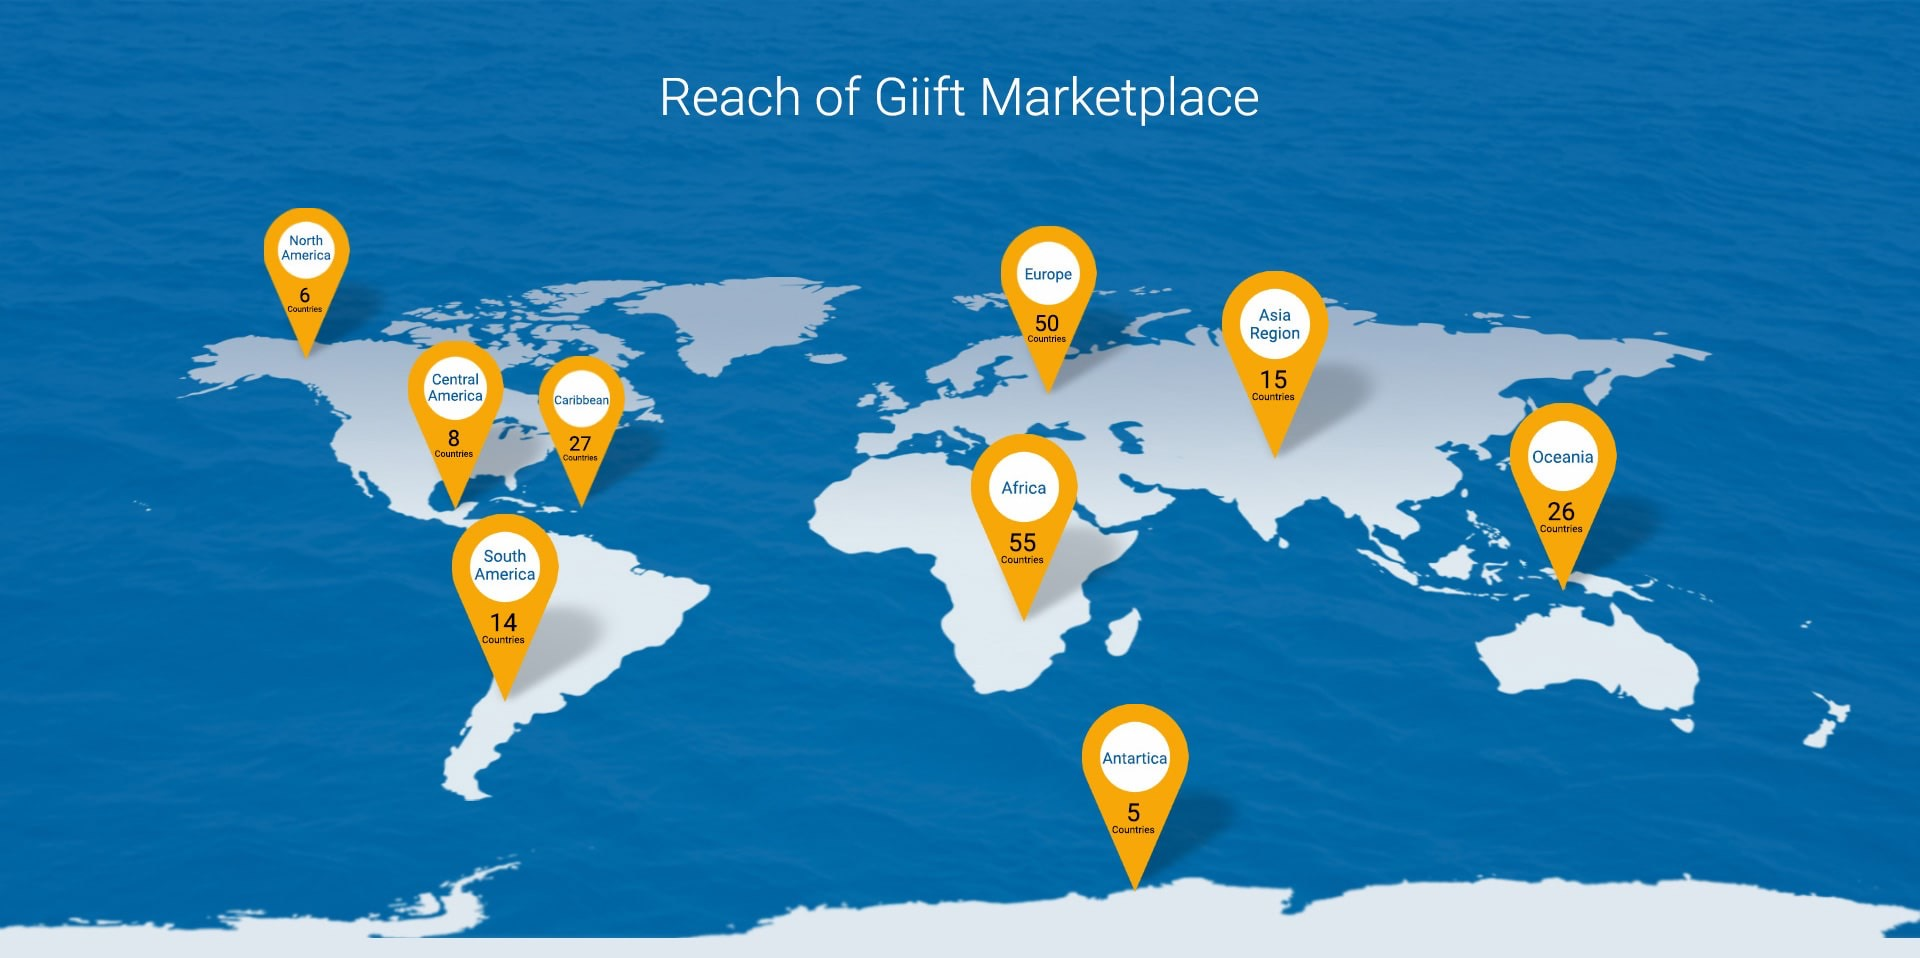 Reach of Giift Loyalty Marketplace